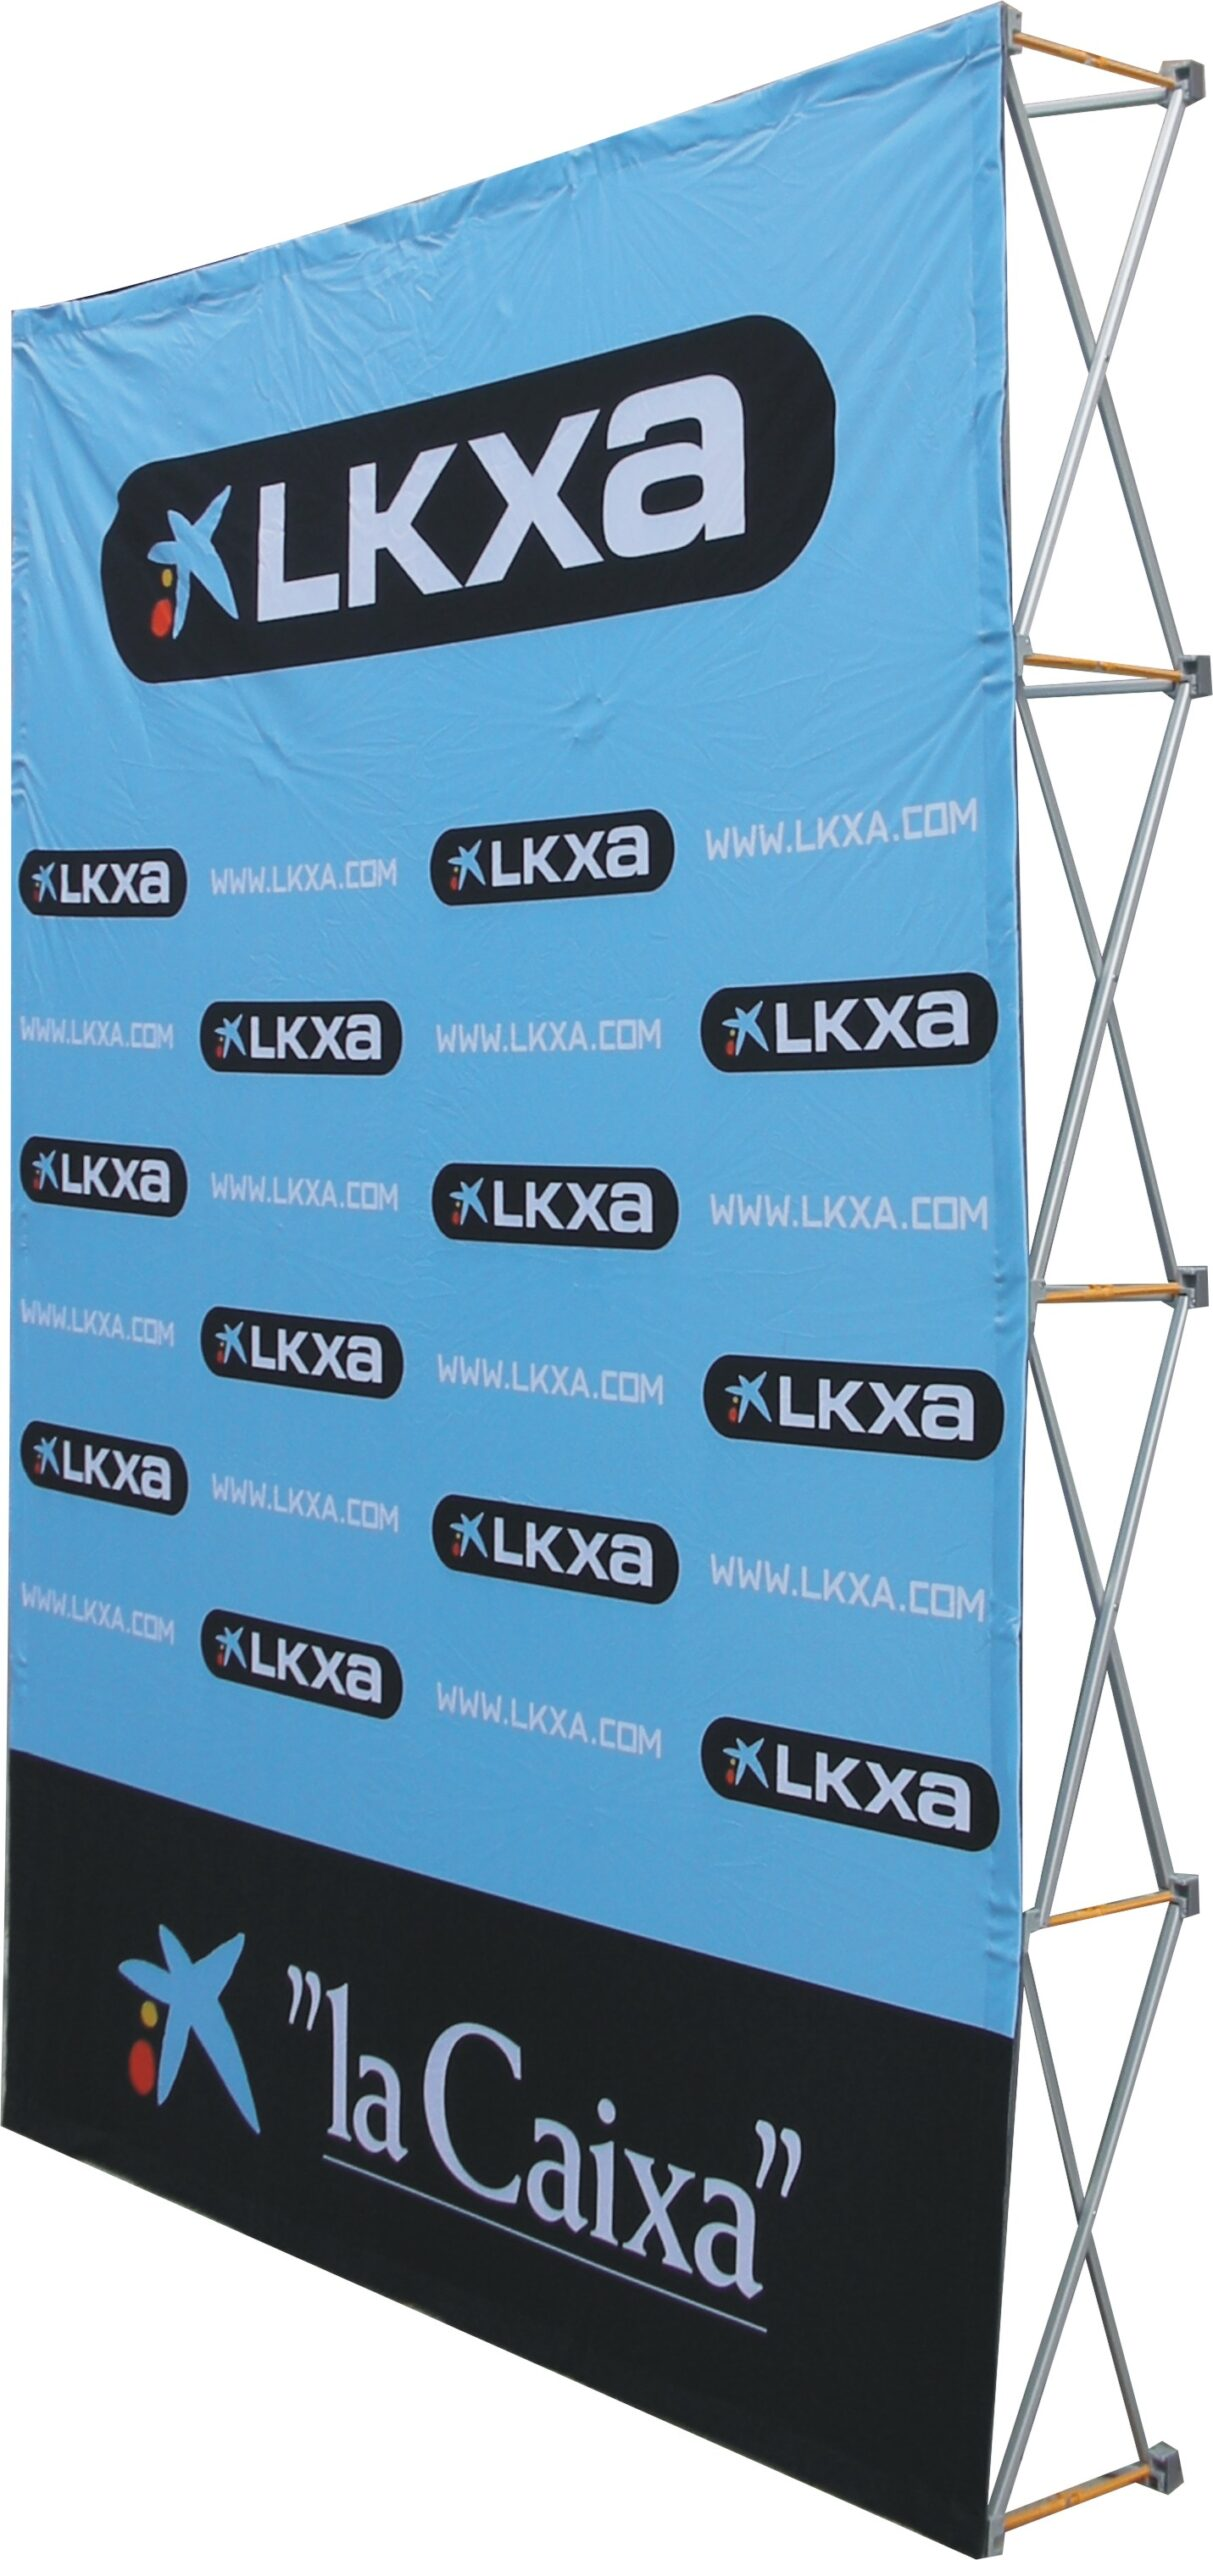 Display Photocall LKXA